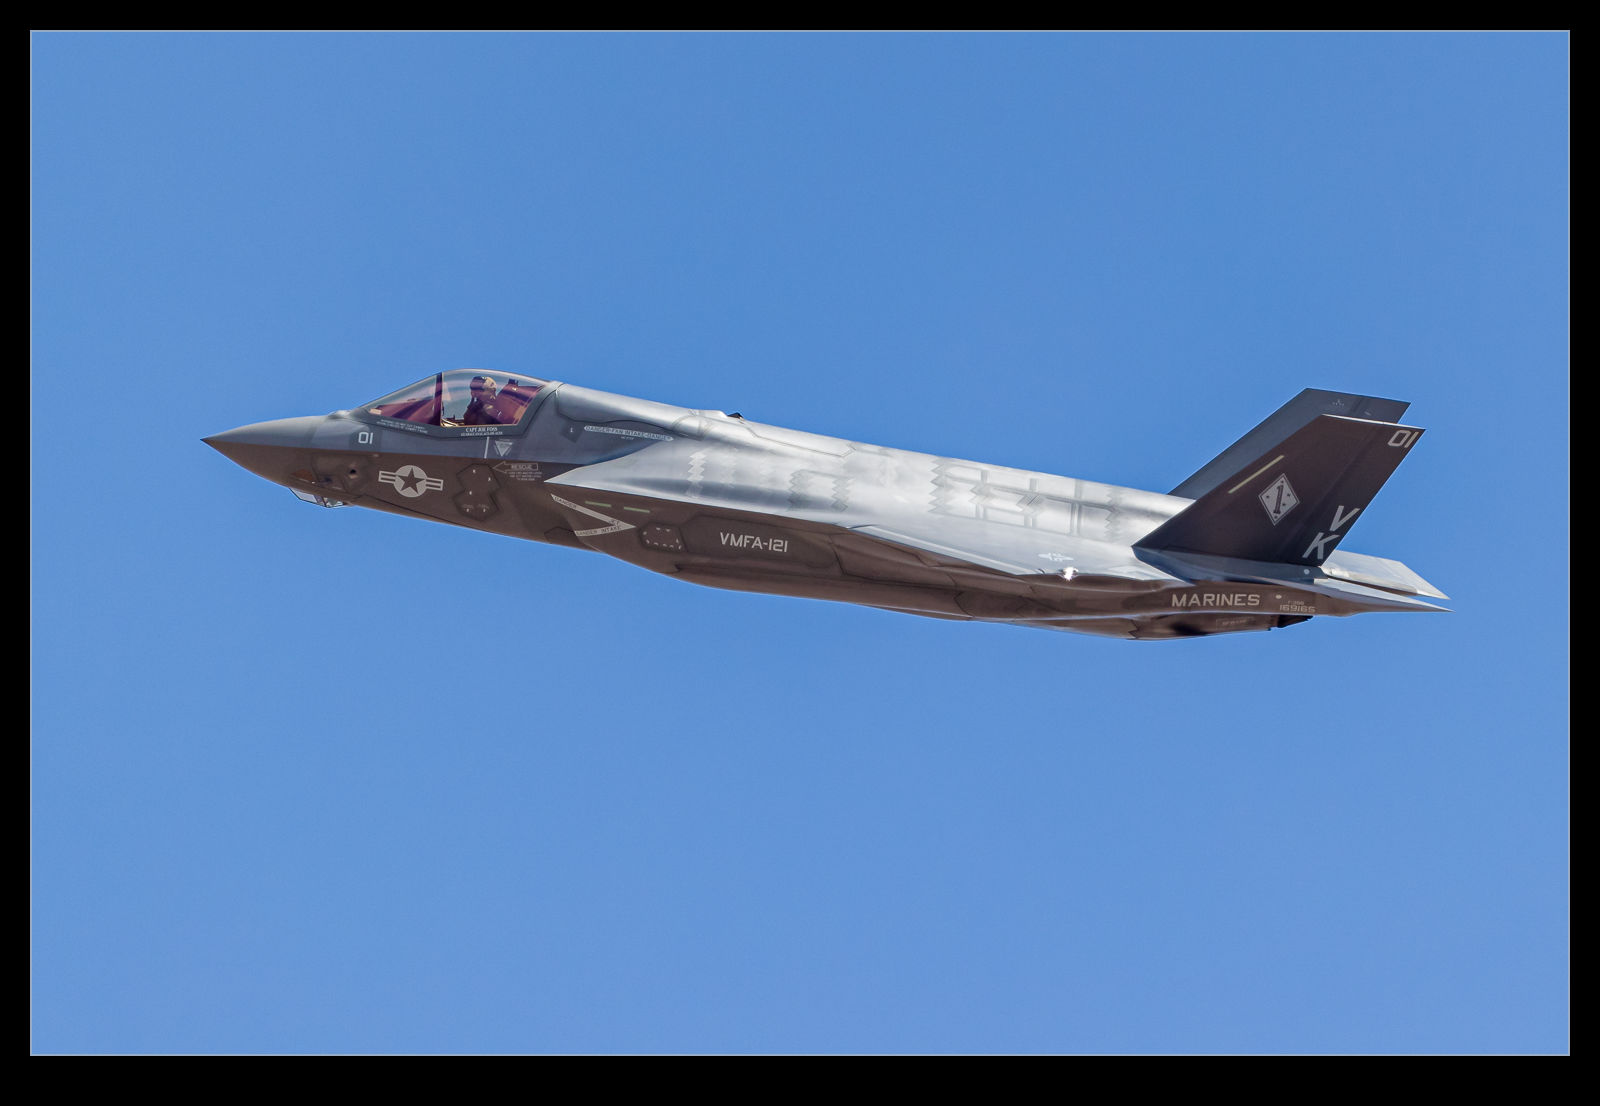 A USMC F-35B climbs out after takeoff from Nellis AFB on a Red Flag mission.